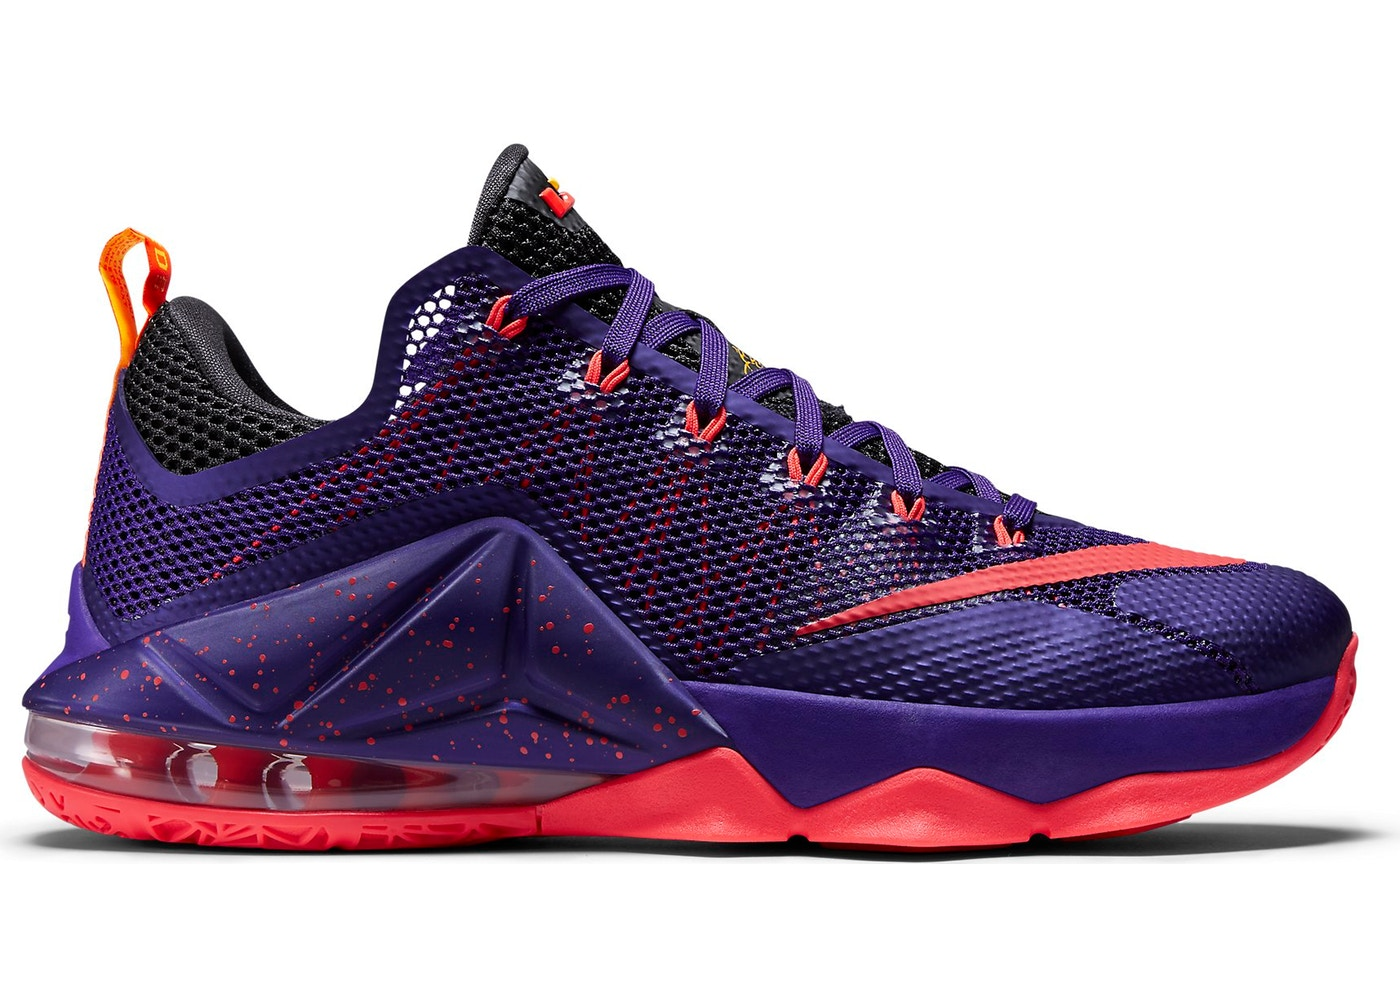 detailed look c0bc5 f6e8b LeBron 12 Low Court Purple